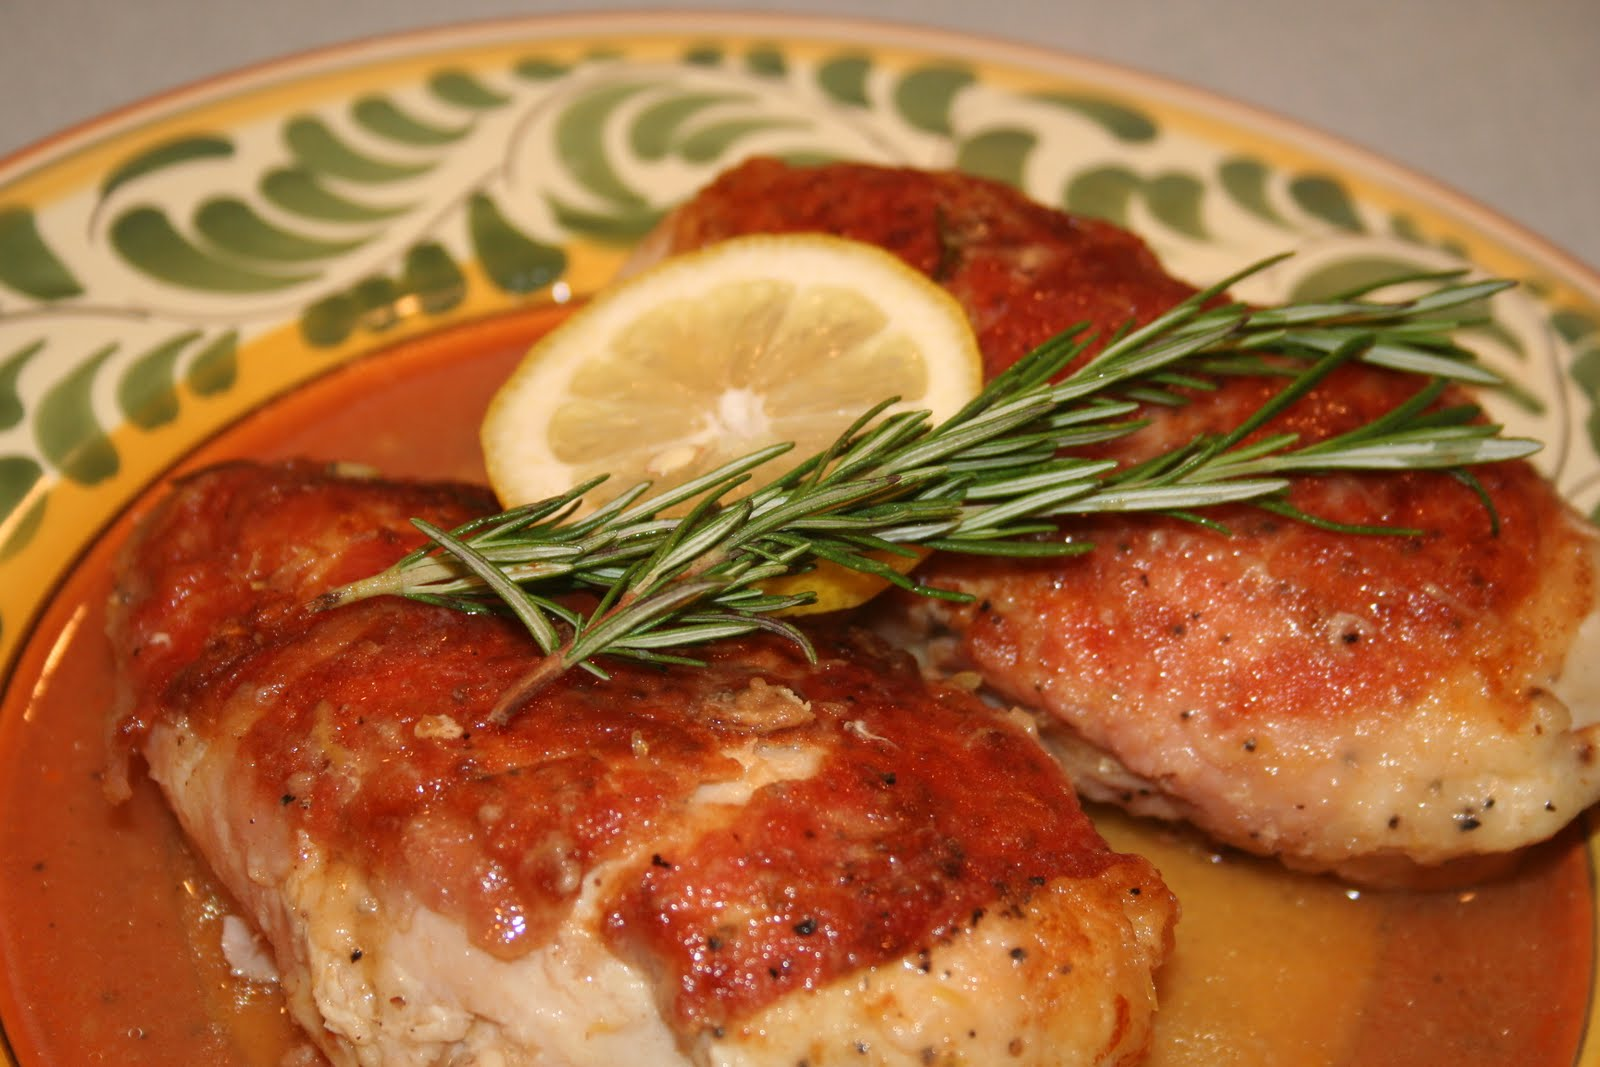 ... and Tyler Florence's Pan Roasted Chicken with Prosciutto and Lemon